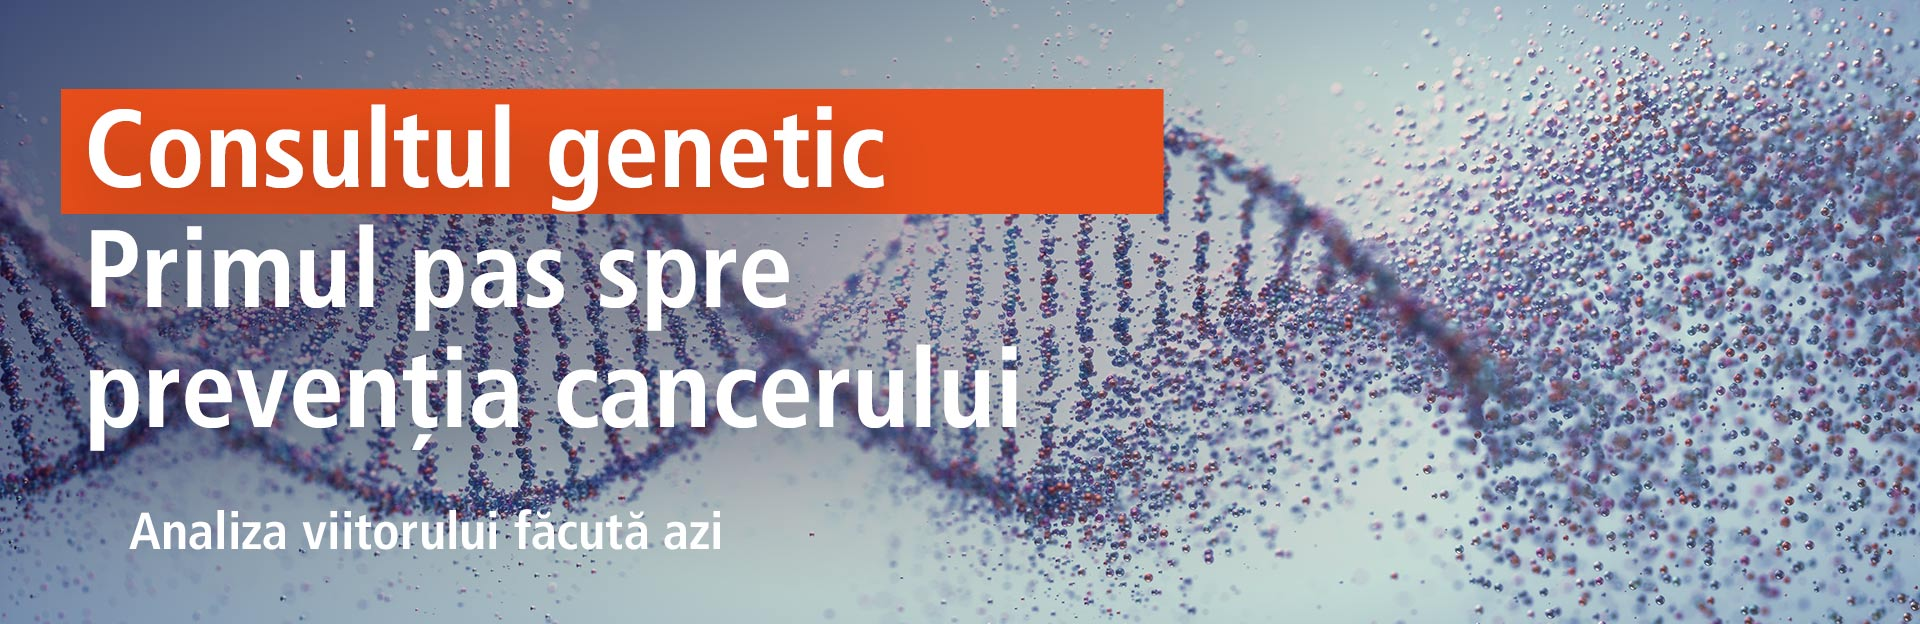 consult-genetic-cancer